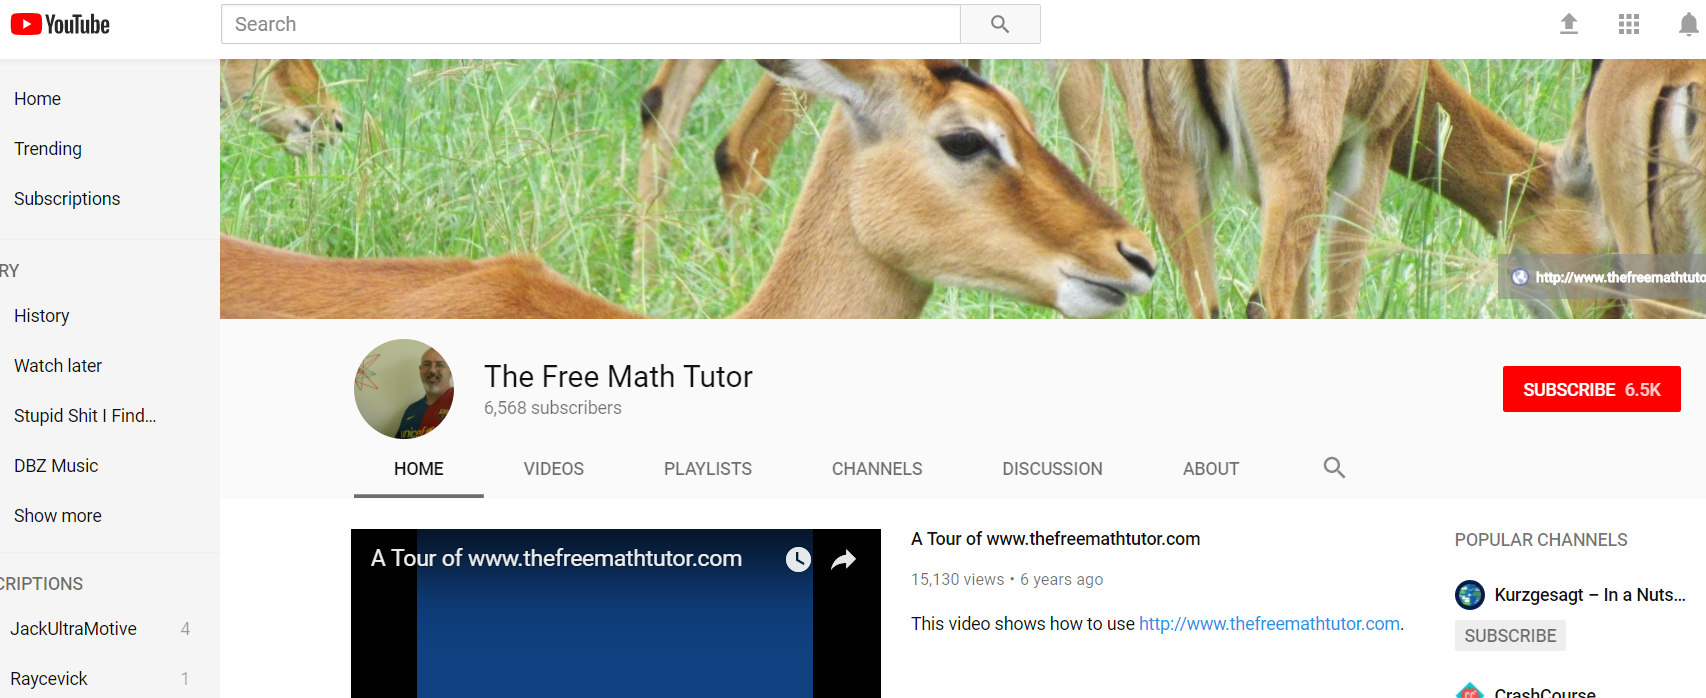 The Free Math Tutor on YouTube